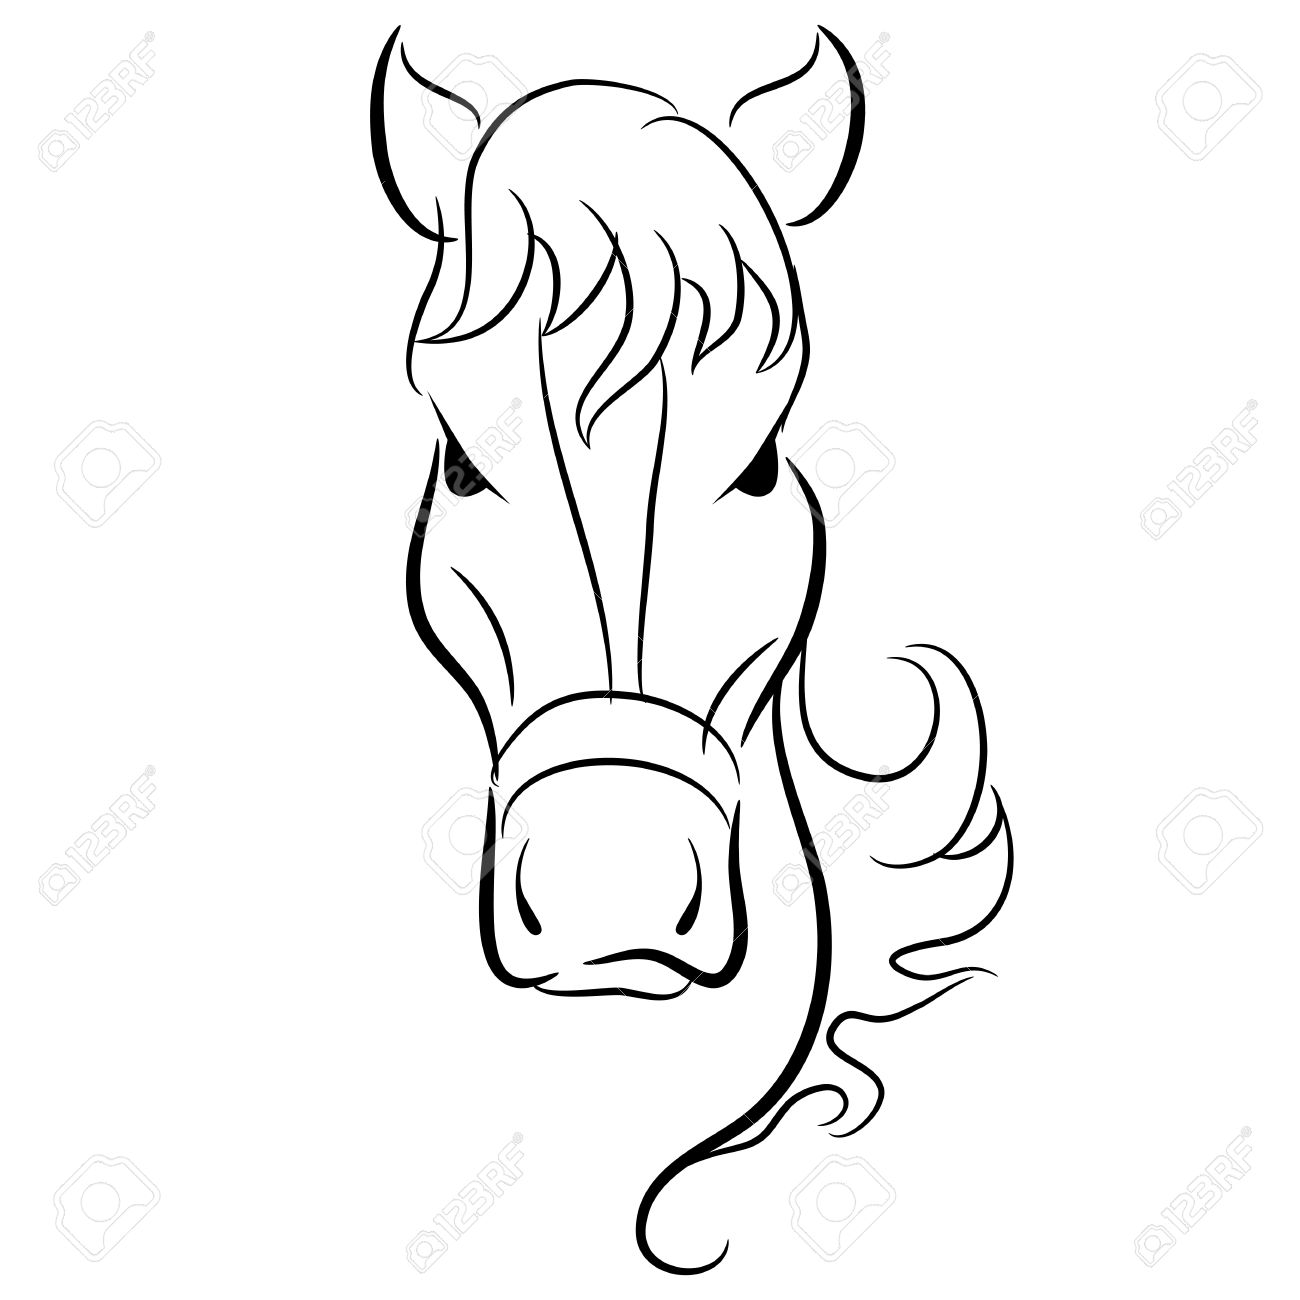 1300x1300 An Image Of A Simple Drawing Of A Horse Head. Royalty Free